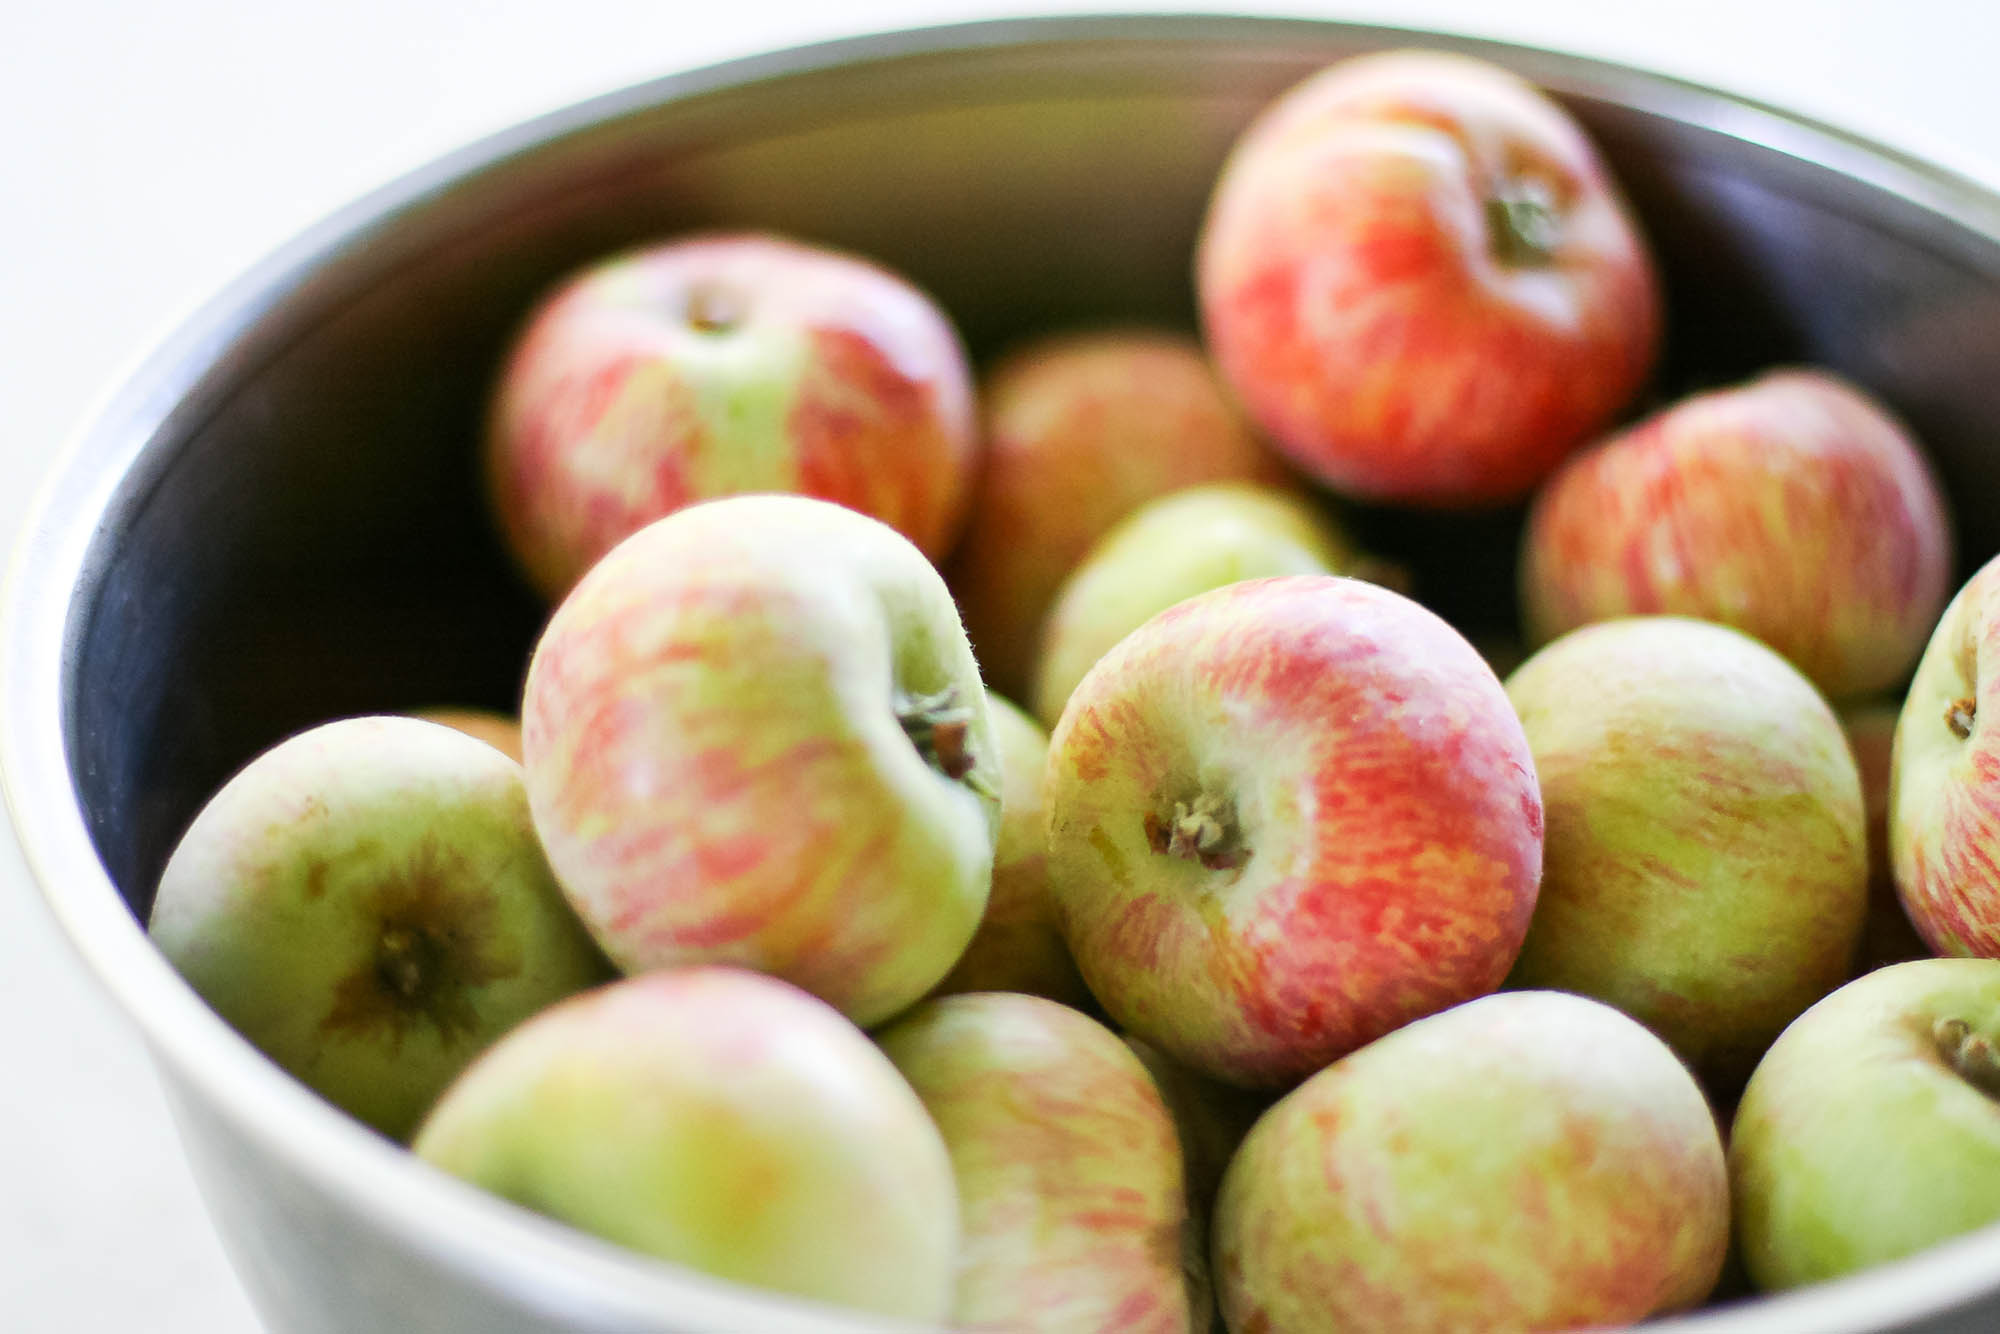 A bowl of apples are fresh foods with a long shelf life.